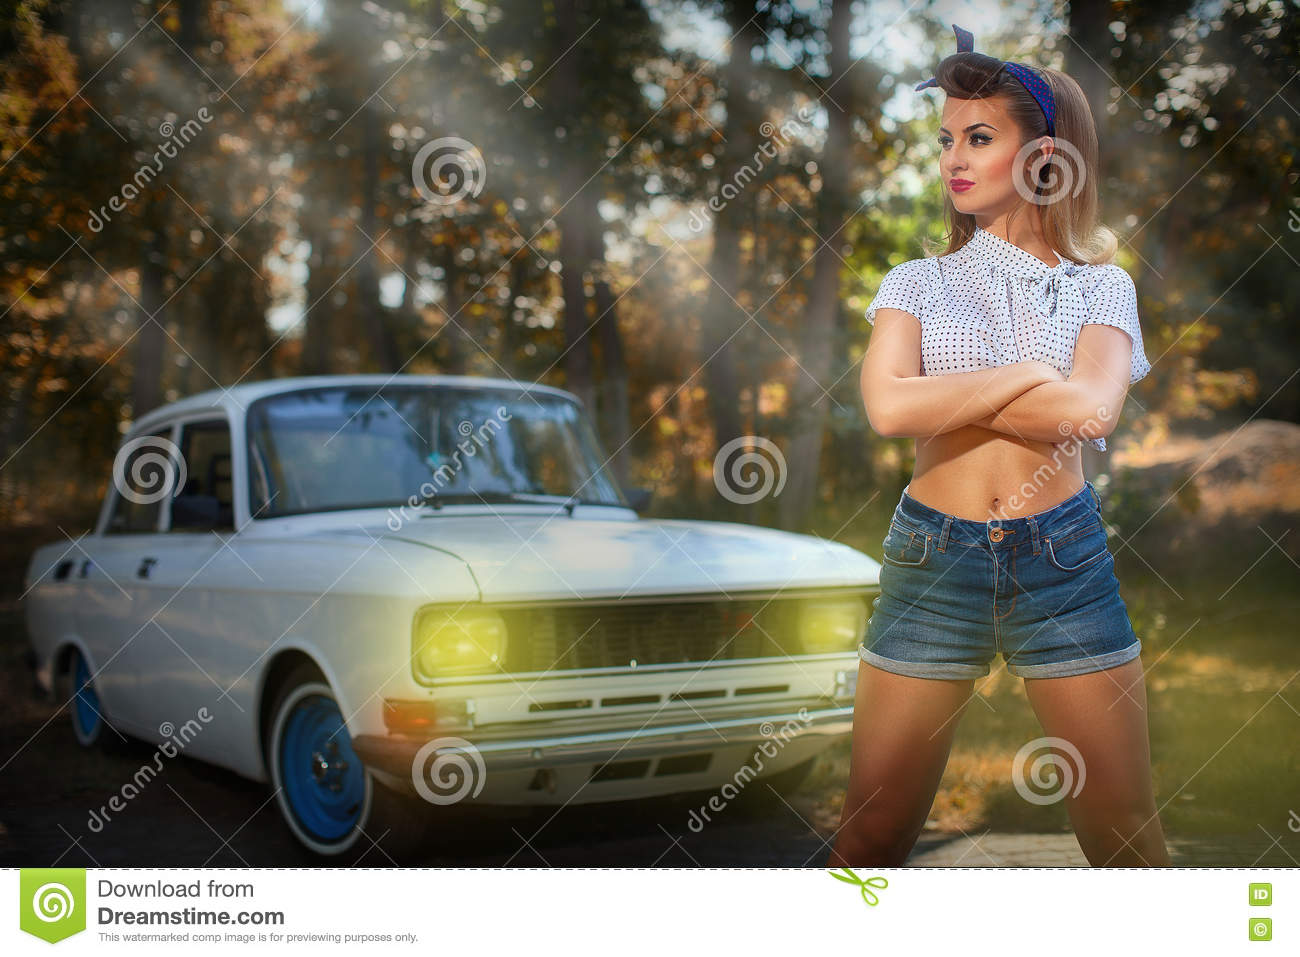 Pin-up girl near retro car on a background of forest